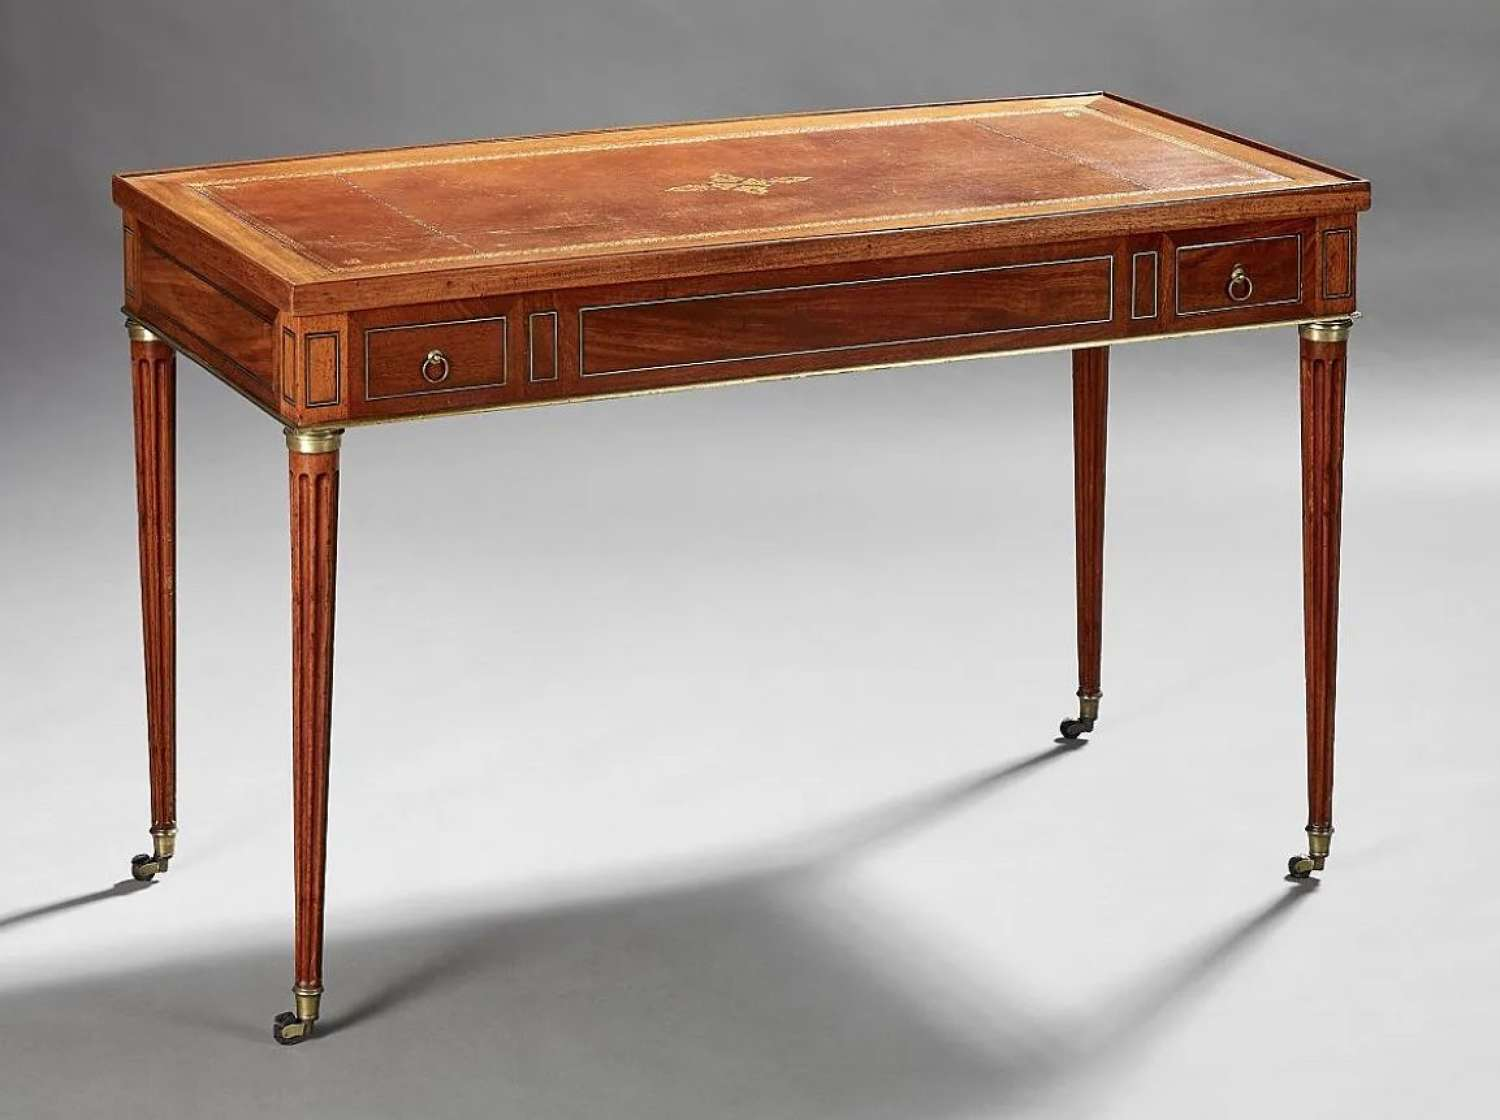 A LOUIS XVI PERIOD TRIC/TRAC TABLE